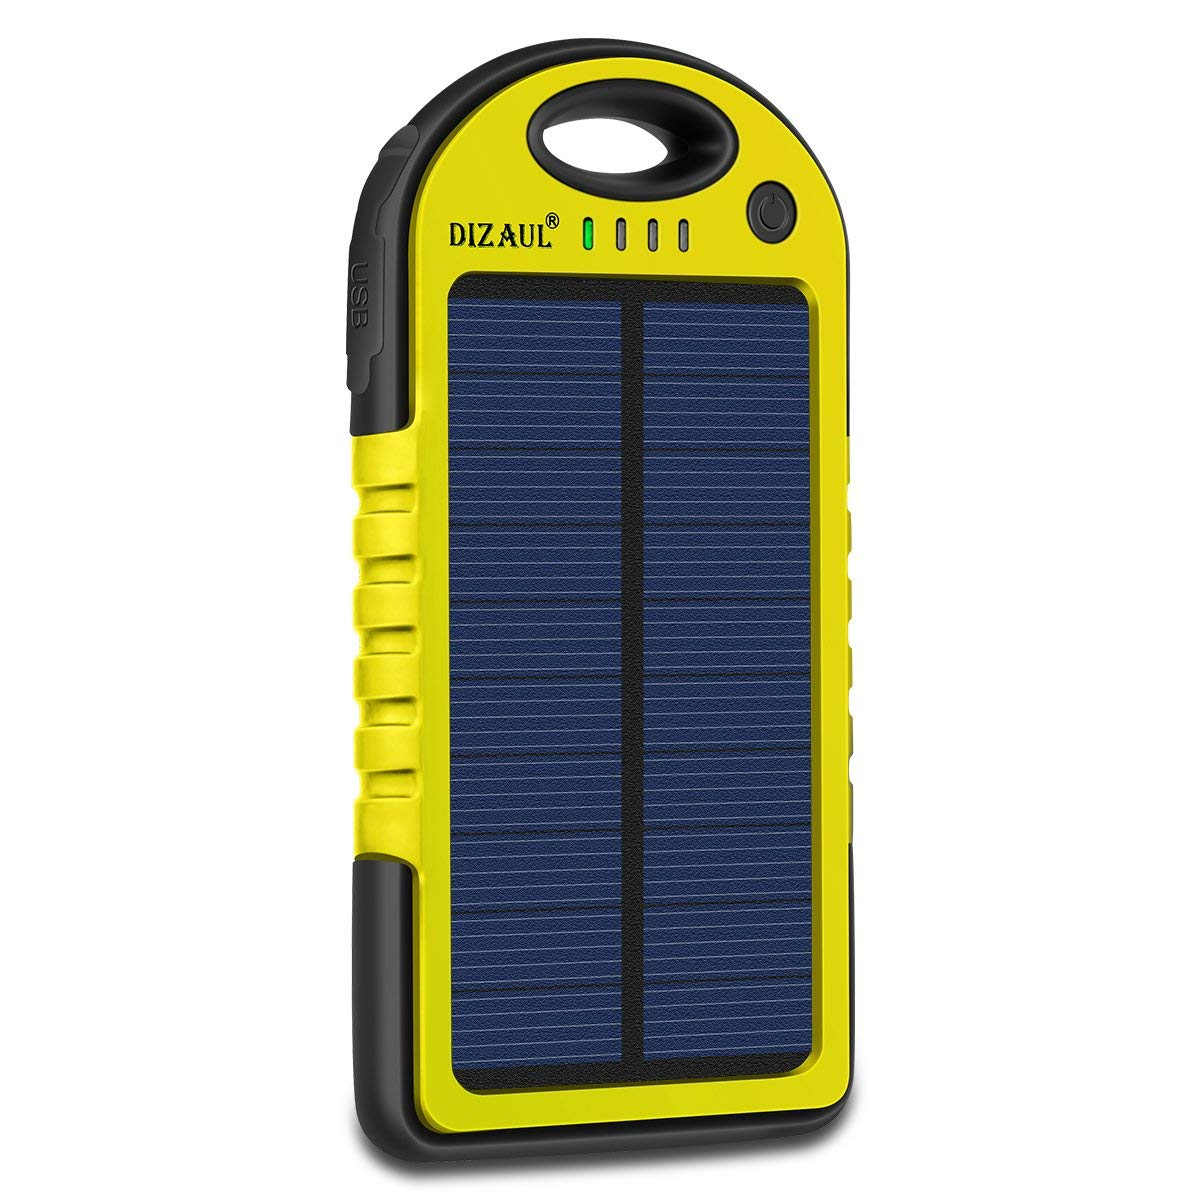 hight resolution of solar charger dizaul 5000mah portable solar power bank waterproof shockproof dustproof dual usb battery bank for cell phone samsung android phones